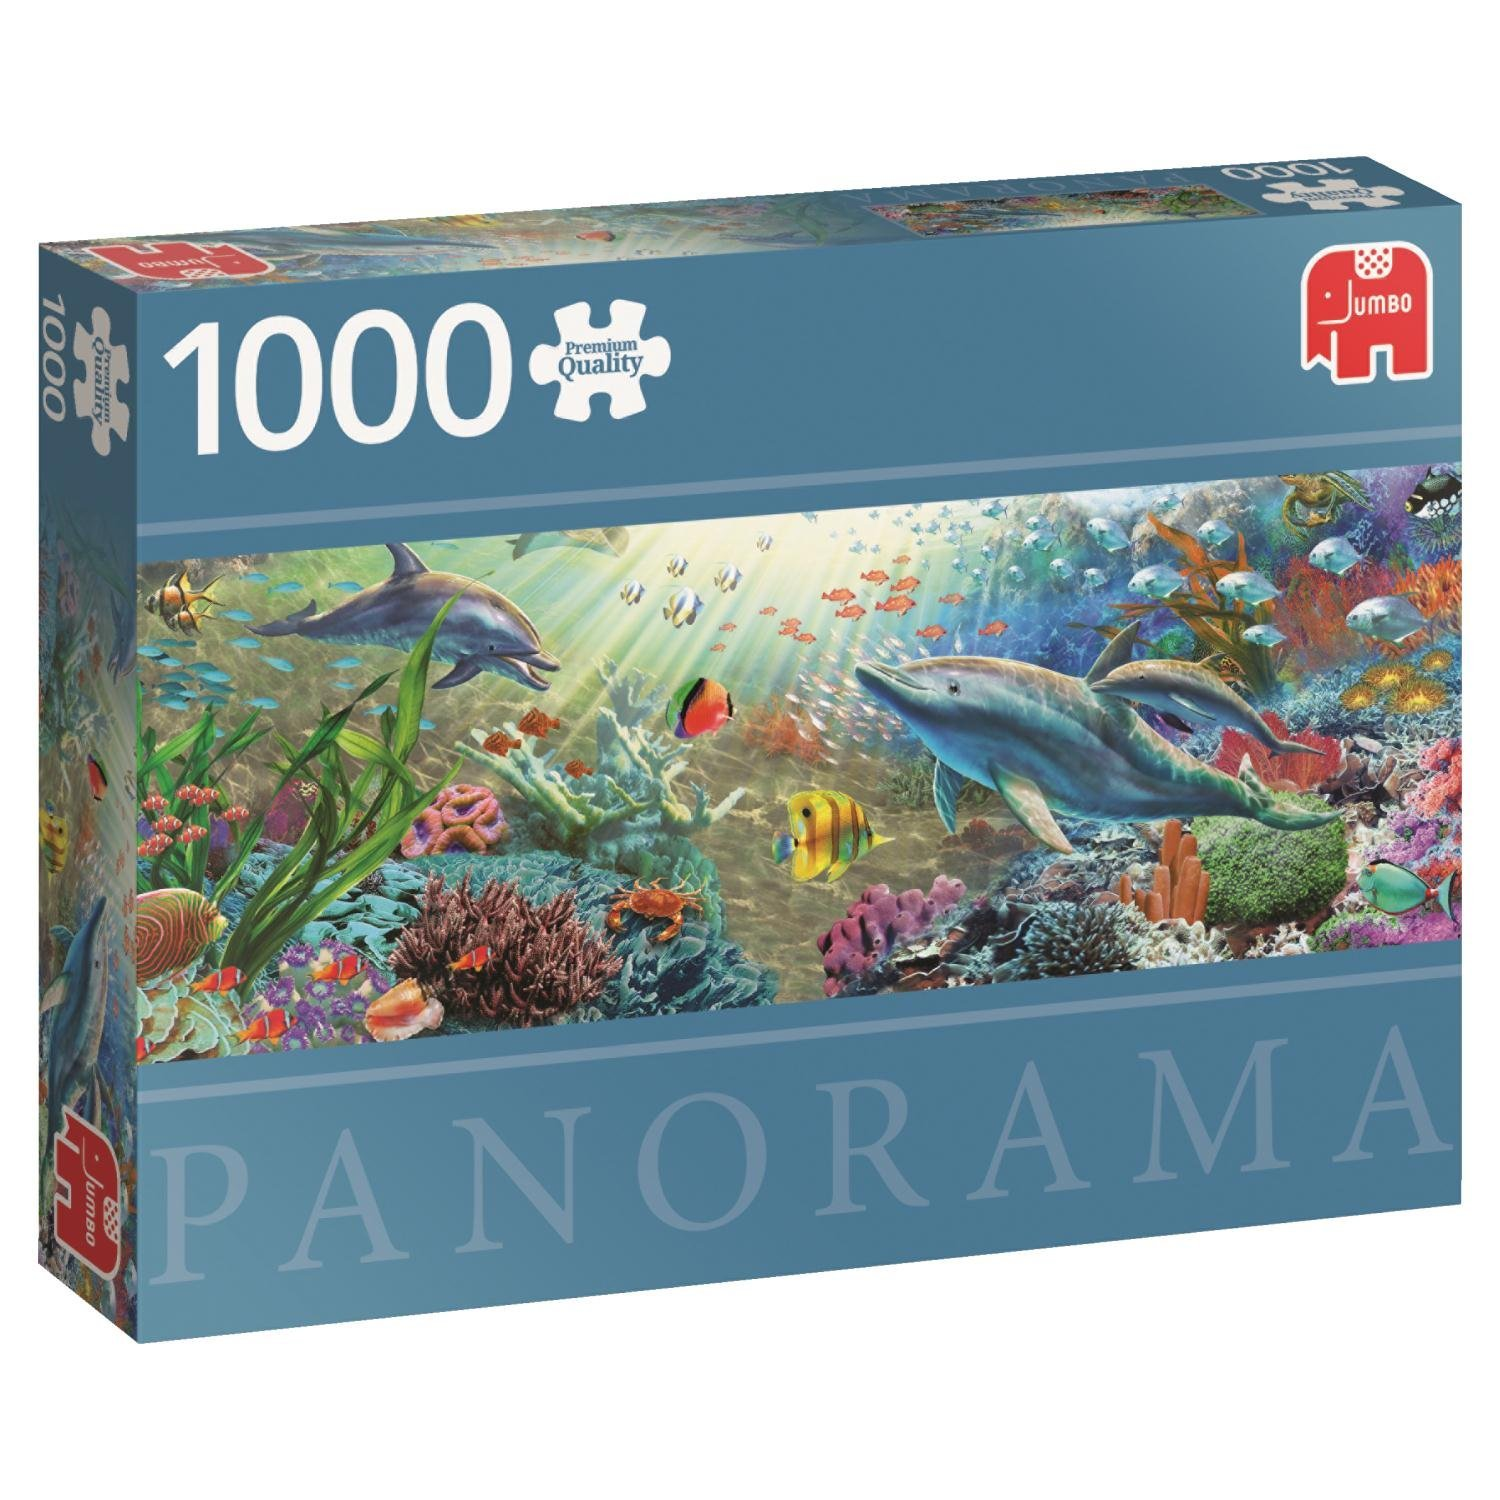 Premium Collection Jumbo, Water Paradise Panoramic, 1000pc Falcon Jigsaw Puzzle